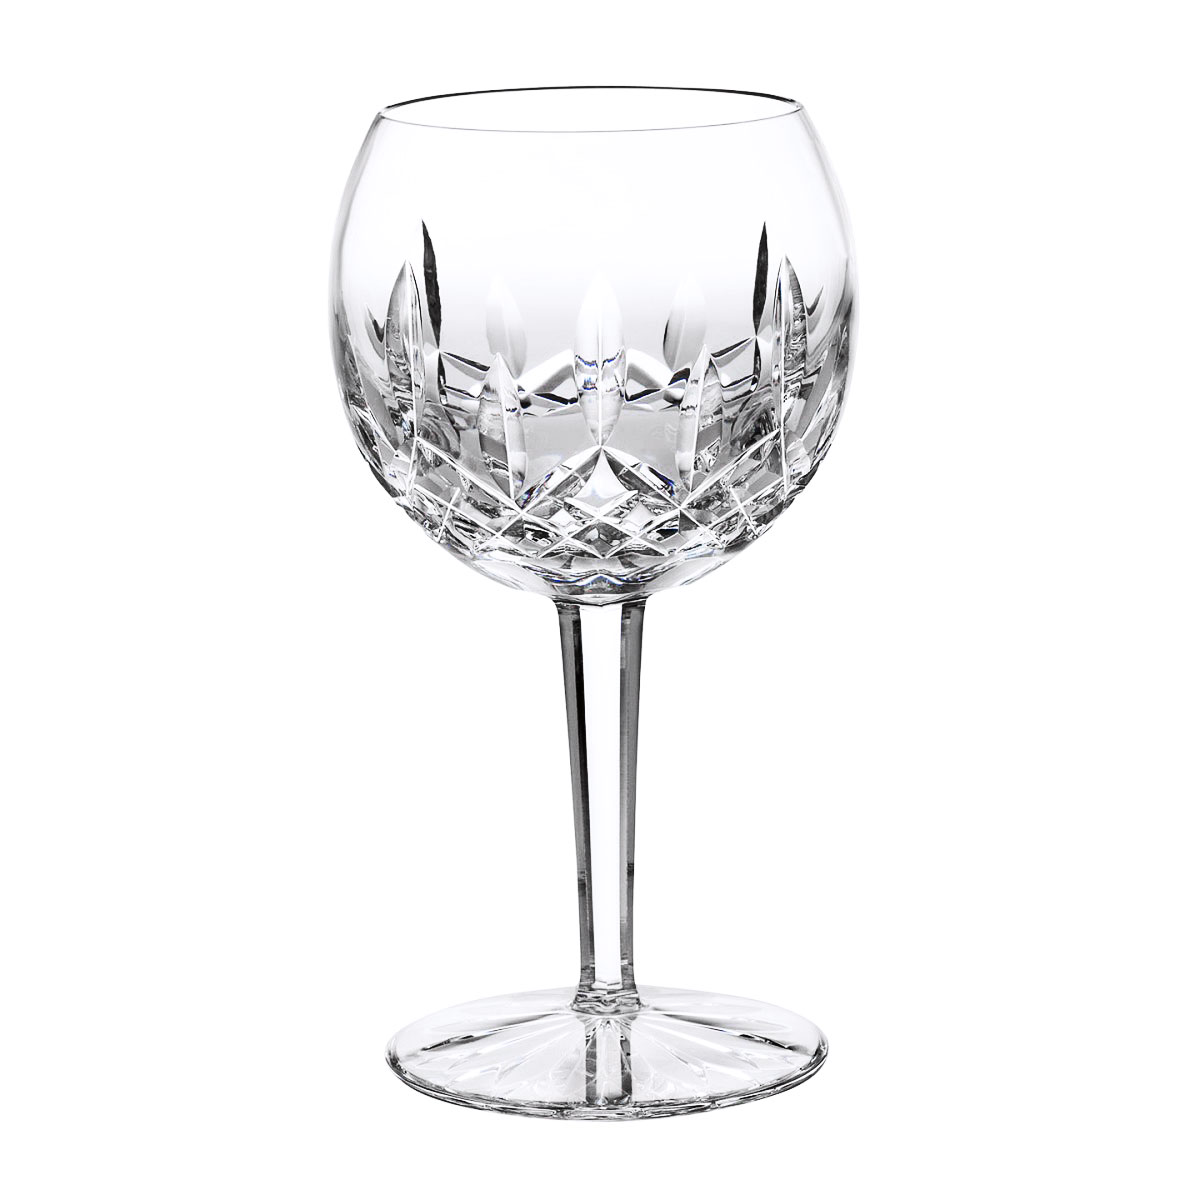 Waterford Crystal, Lismore Oversize Crystal Wine, Single